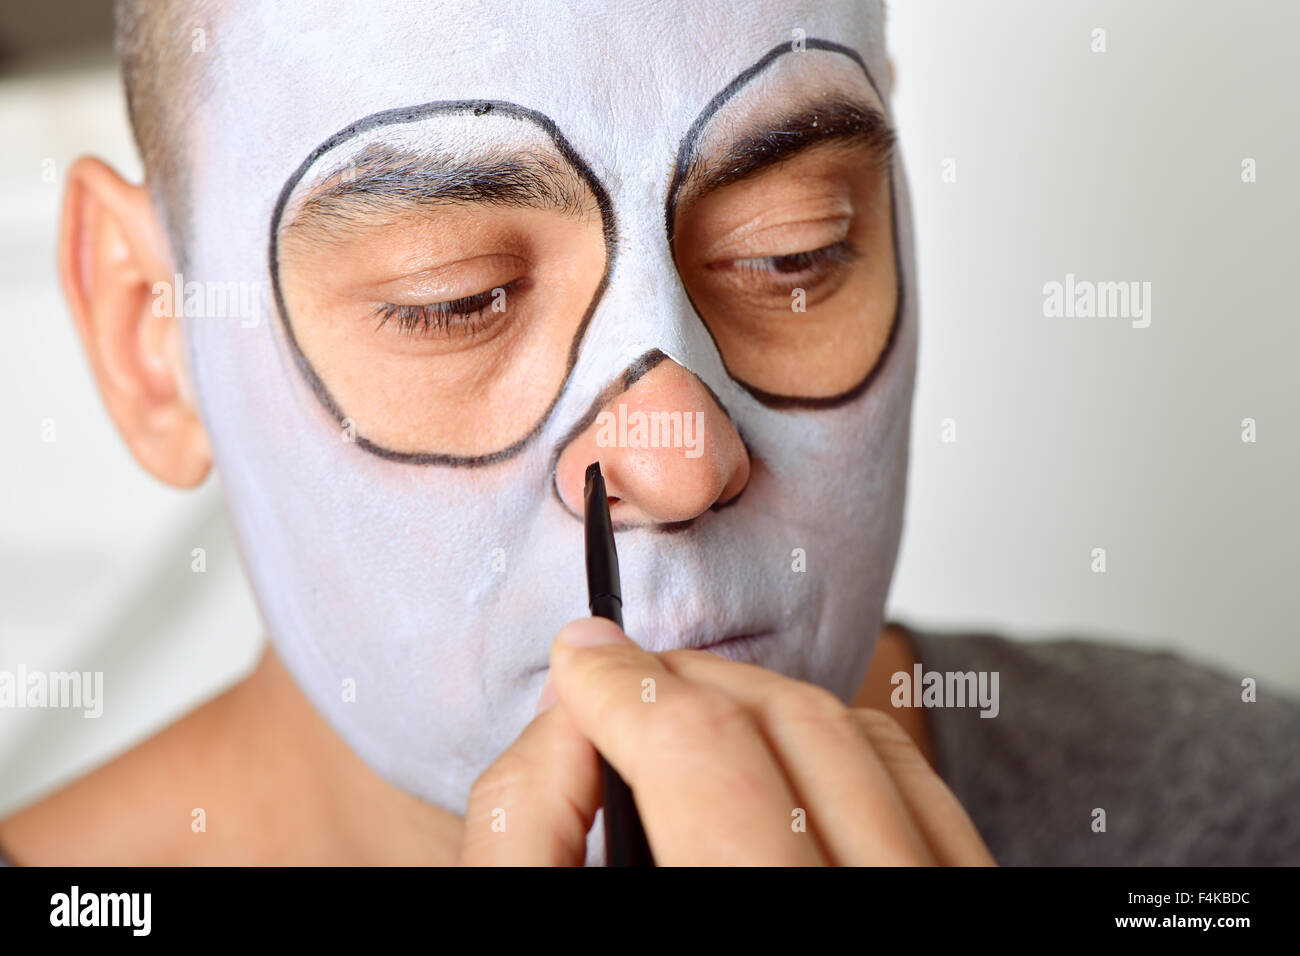 closeup of a young man making up himself to perform a character - Stock Image